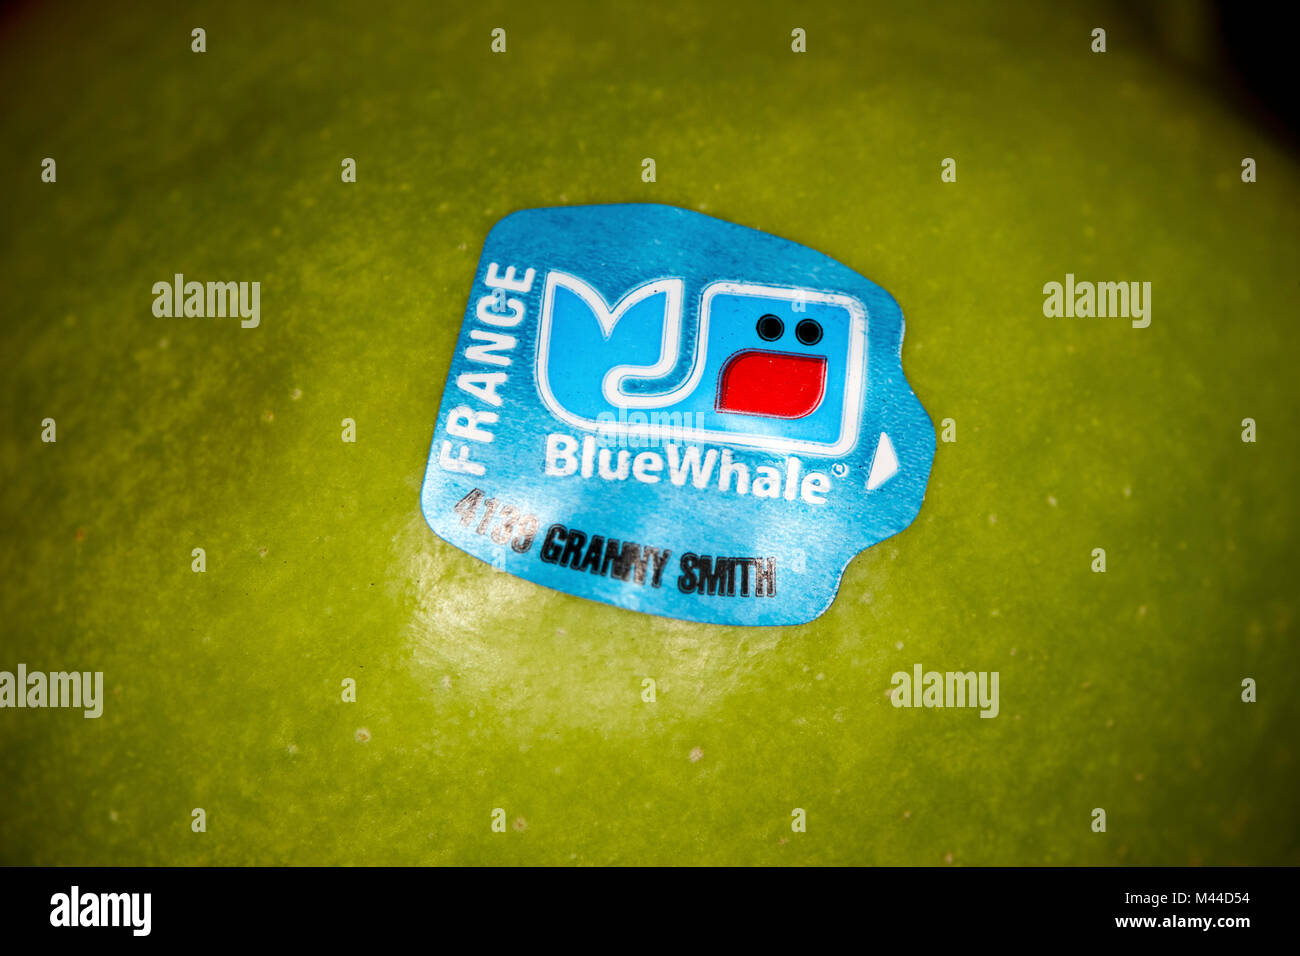 blue whale sticker on a green granny smith apple imported from france - Stock Image